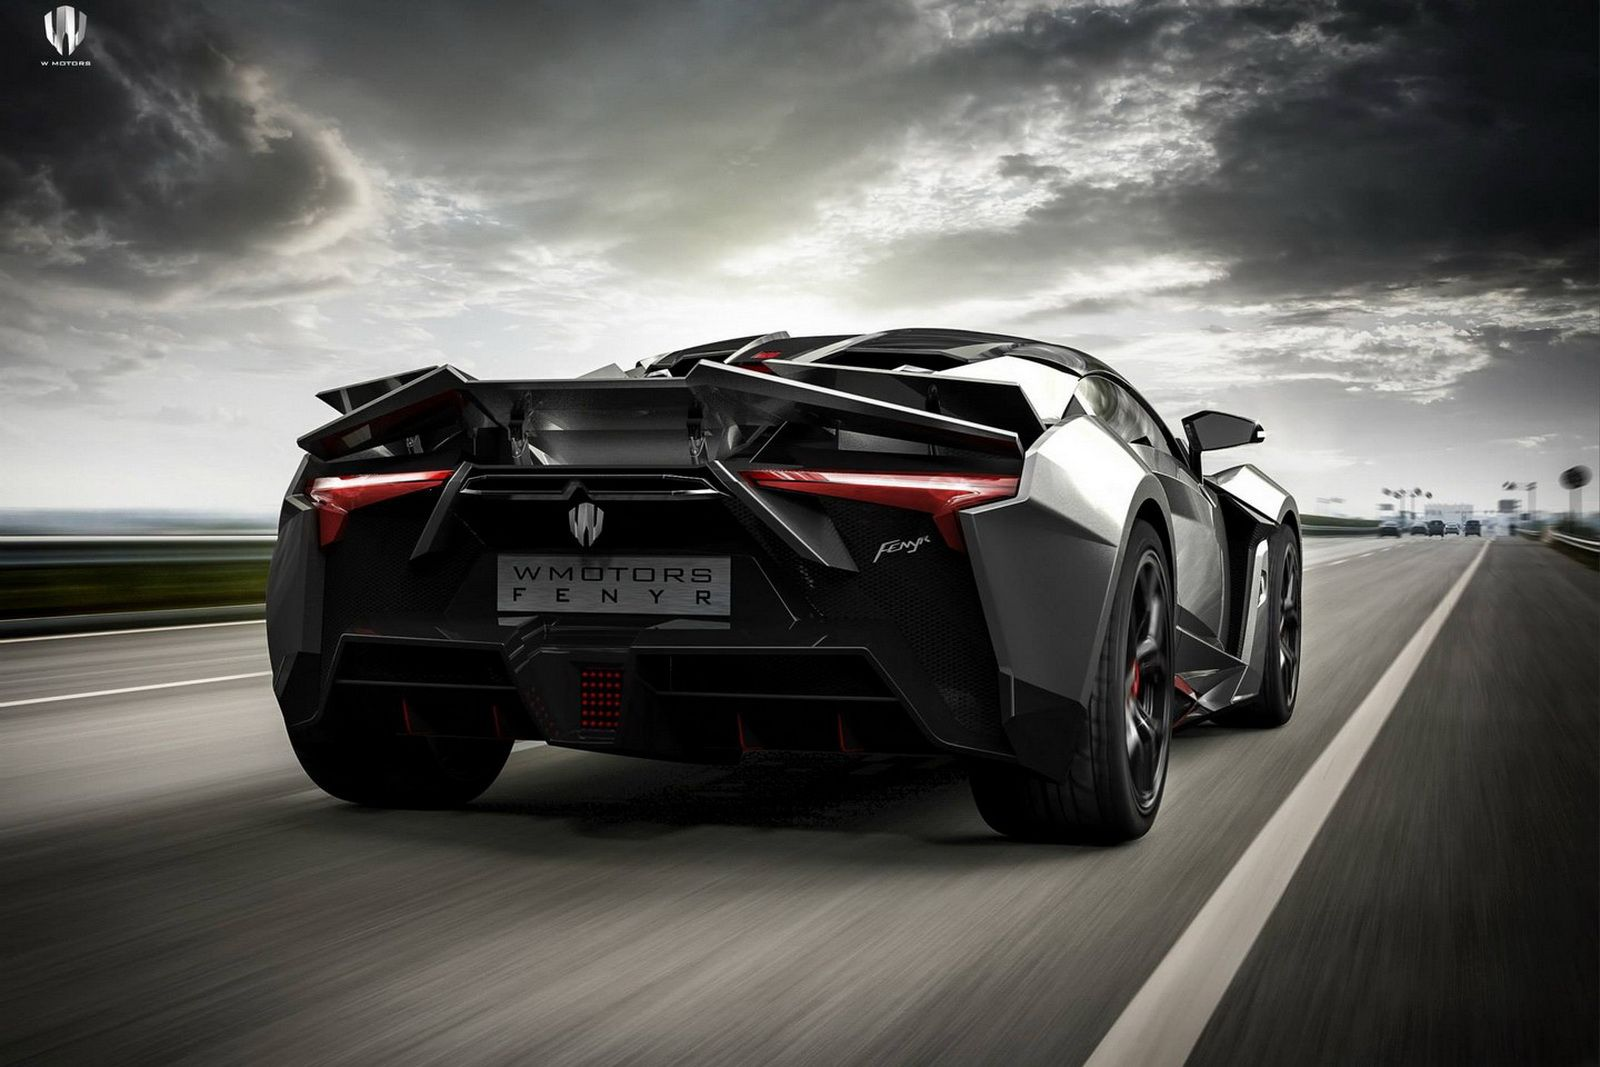 New fenyr supersport revealed at dubai delivers over 900hp 248mph